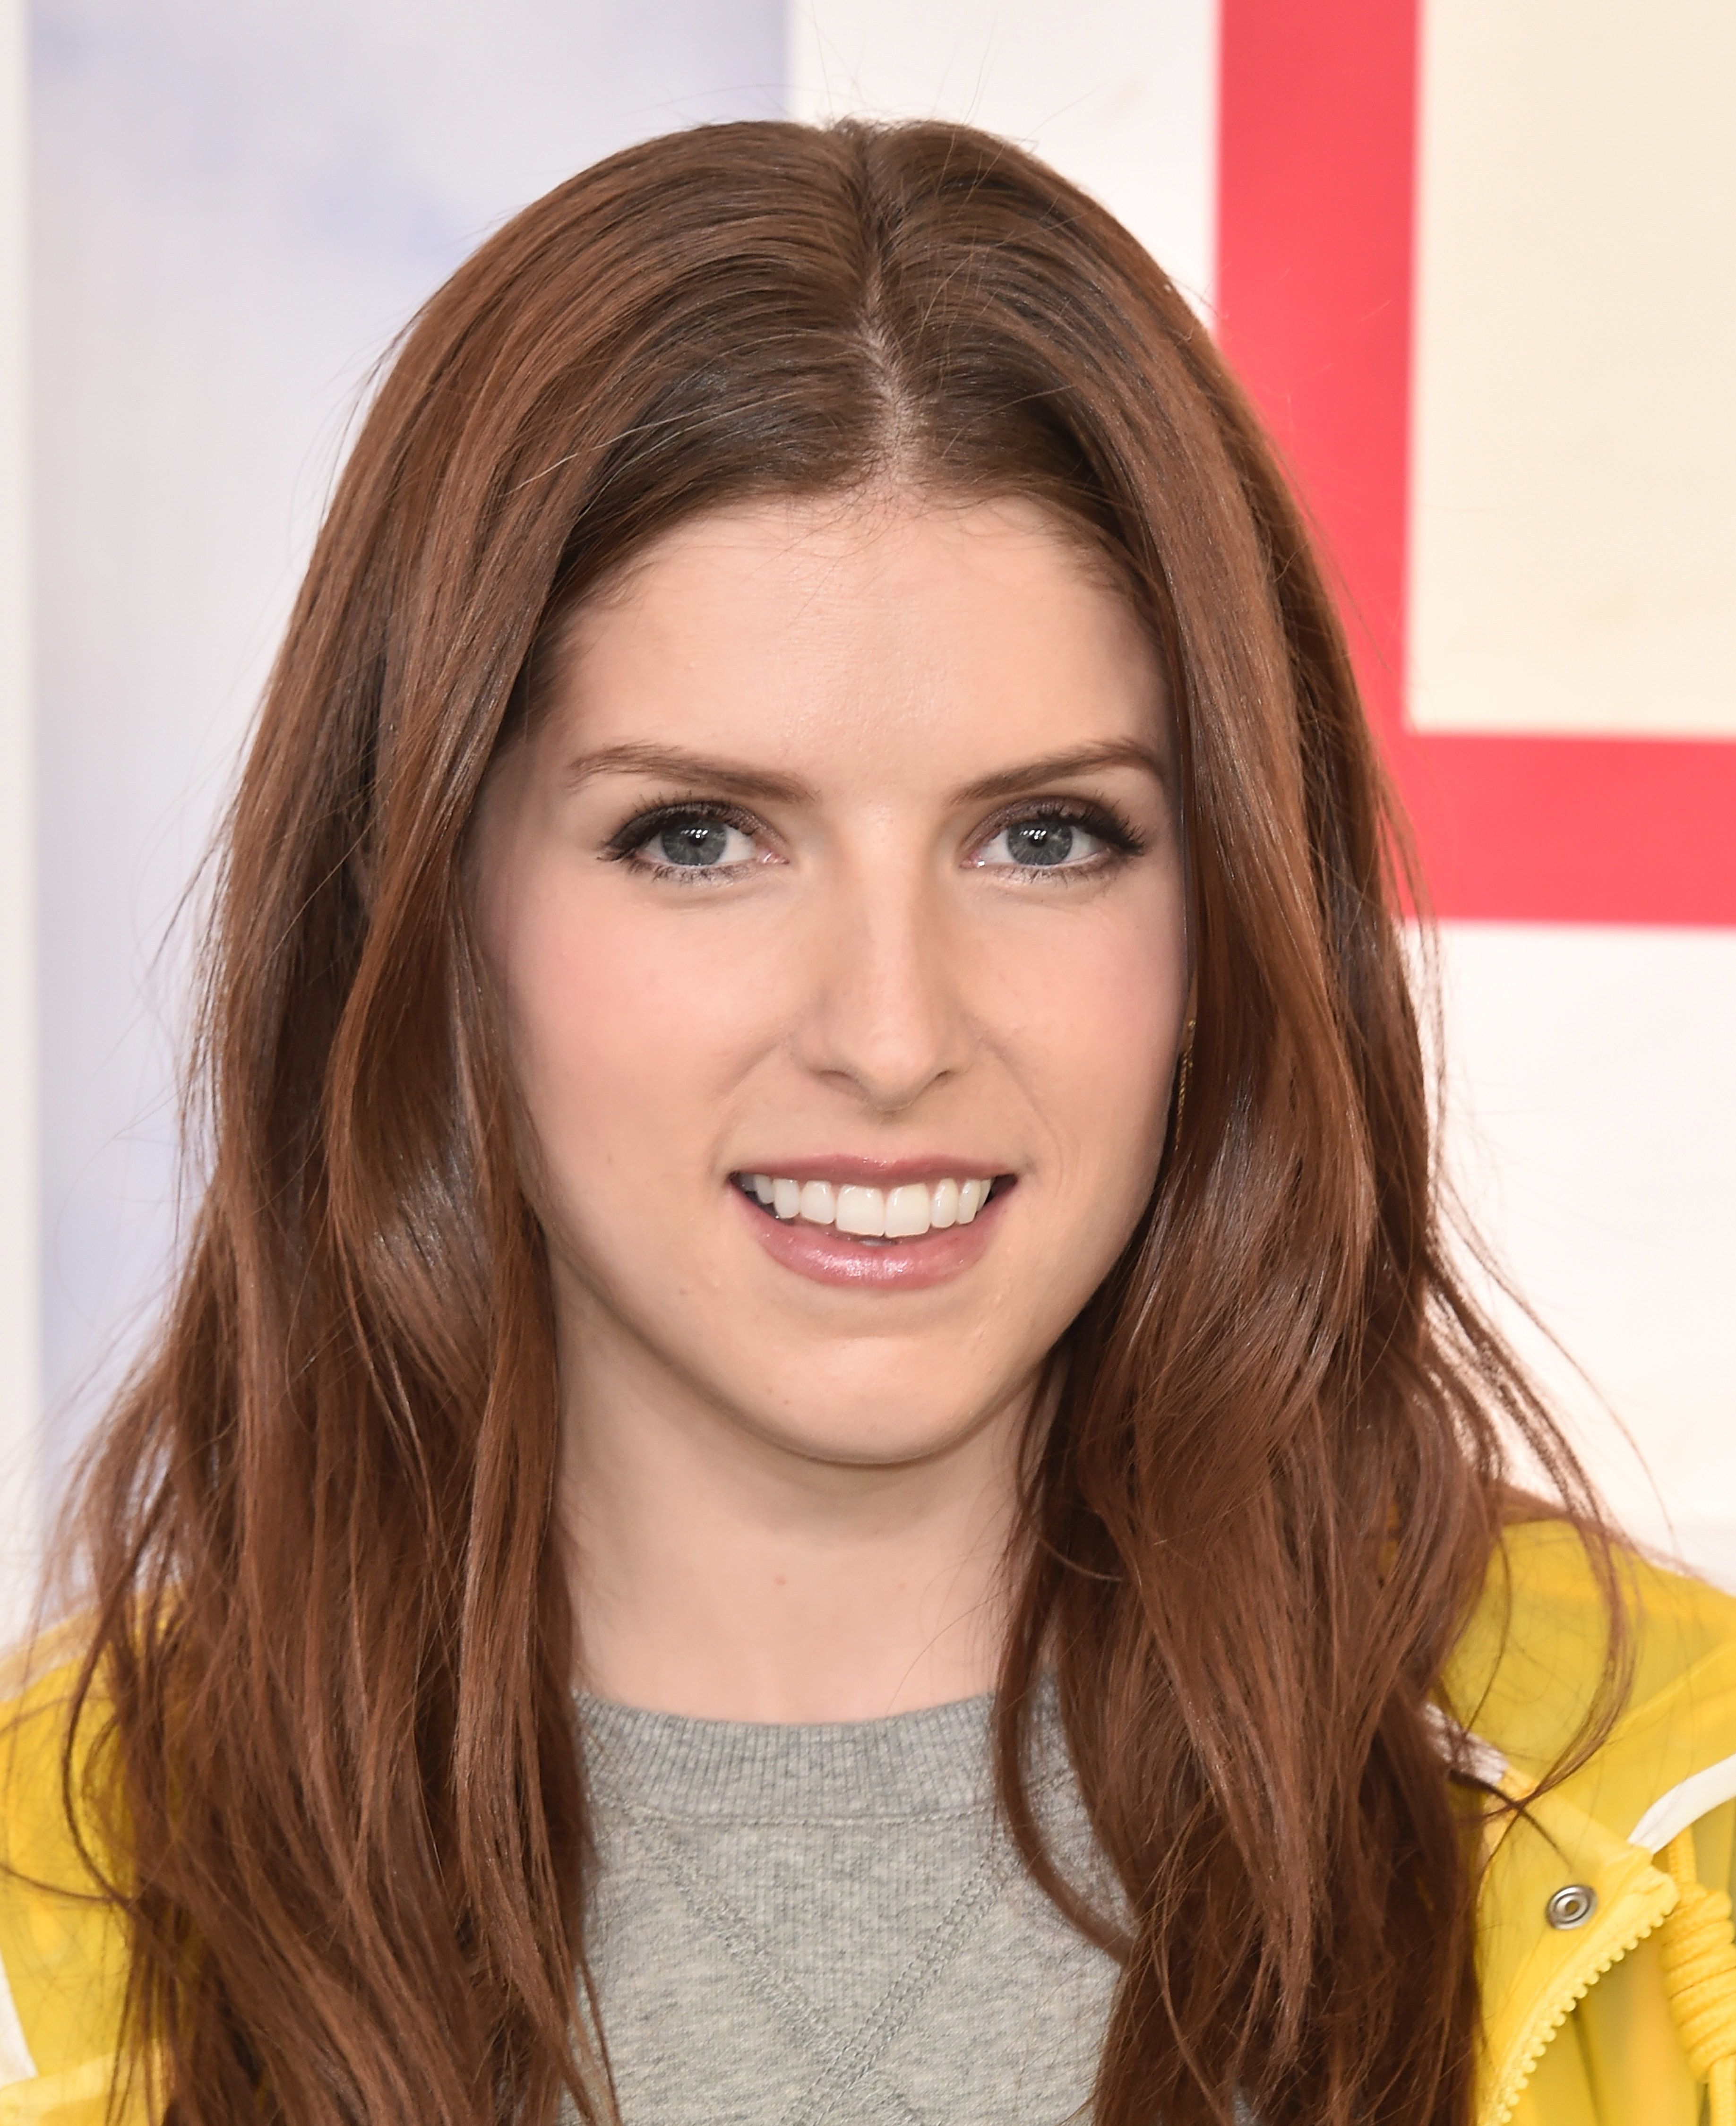 PASADENA, CA - MARCH 25:  Anna Kendrick attends the Hunter For Target Ultimate Family Festival at Brookside Golf Club on March 25, 2018 in Pasadena, California.  (Photo by Alberto E. Rodriguez/Getty Images)